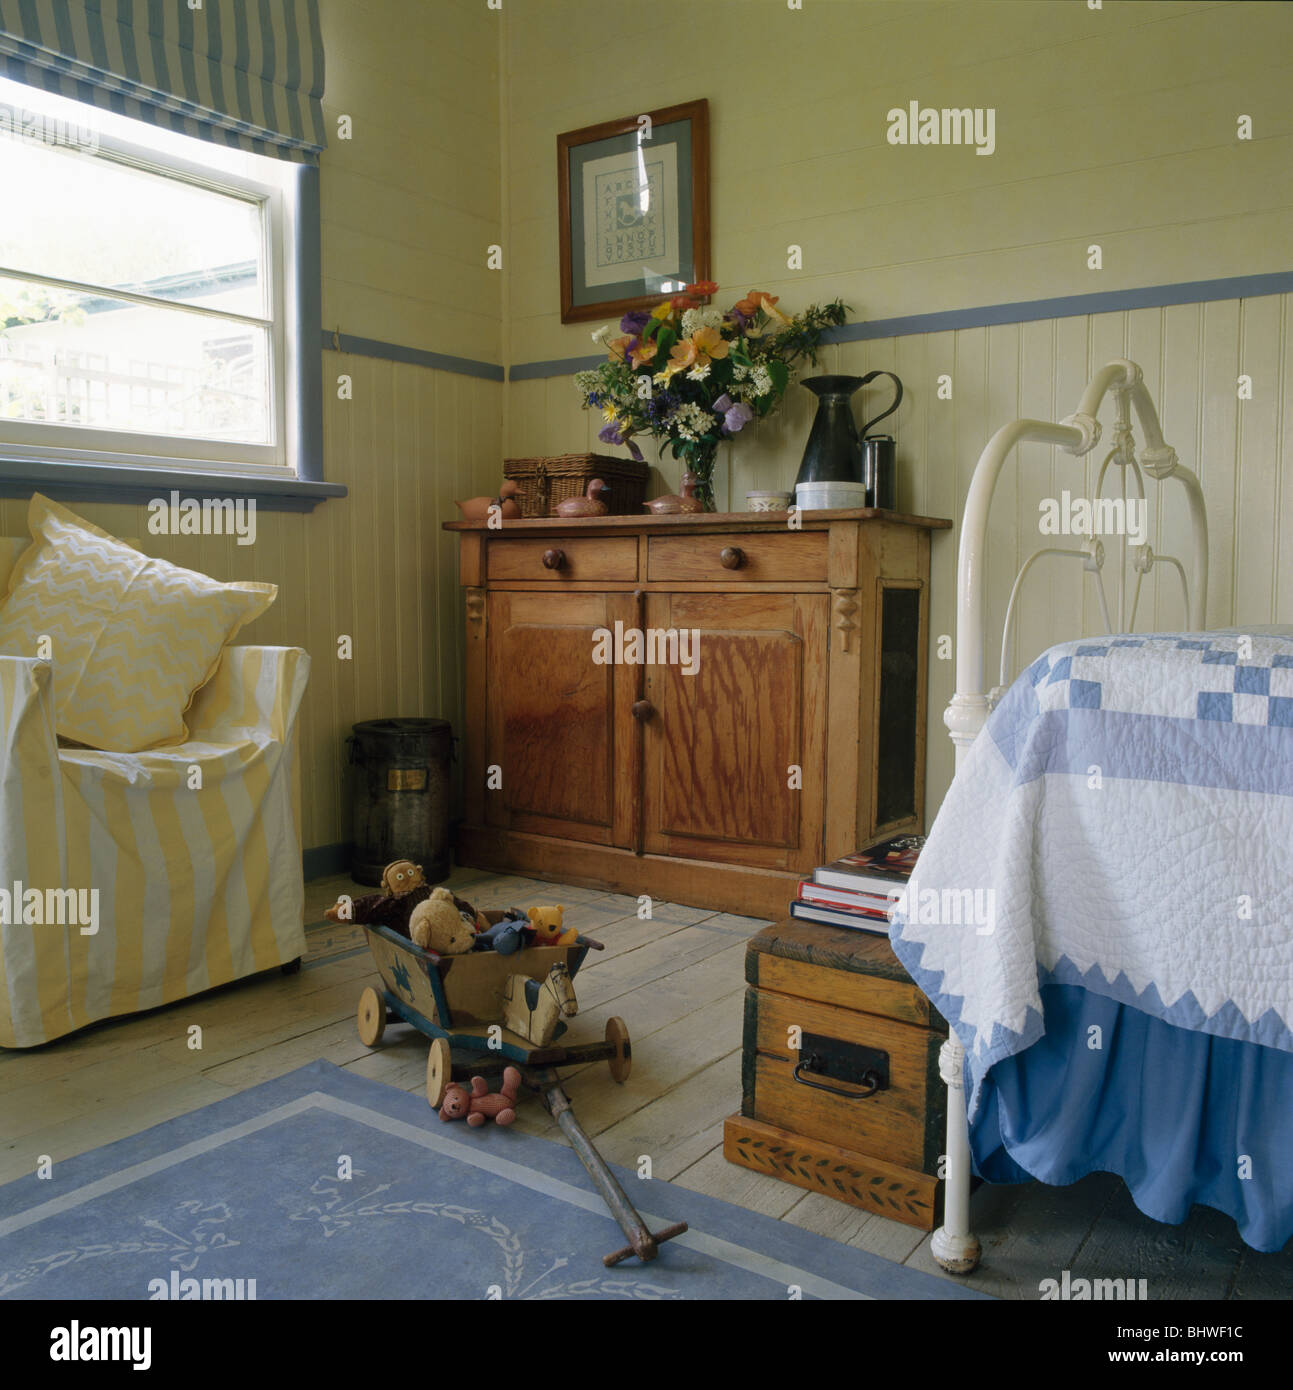 Wooden Cupboard And Yellow Striped Chair In Childu0027s Bedroom With Blue+white  Patchwork Quilt On White Cast Iron Bed